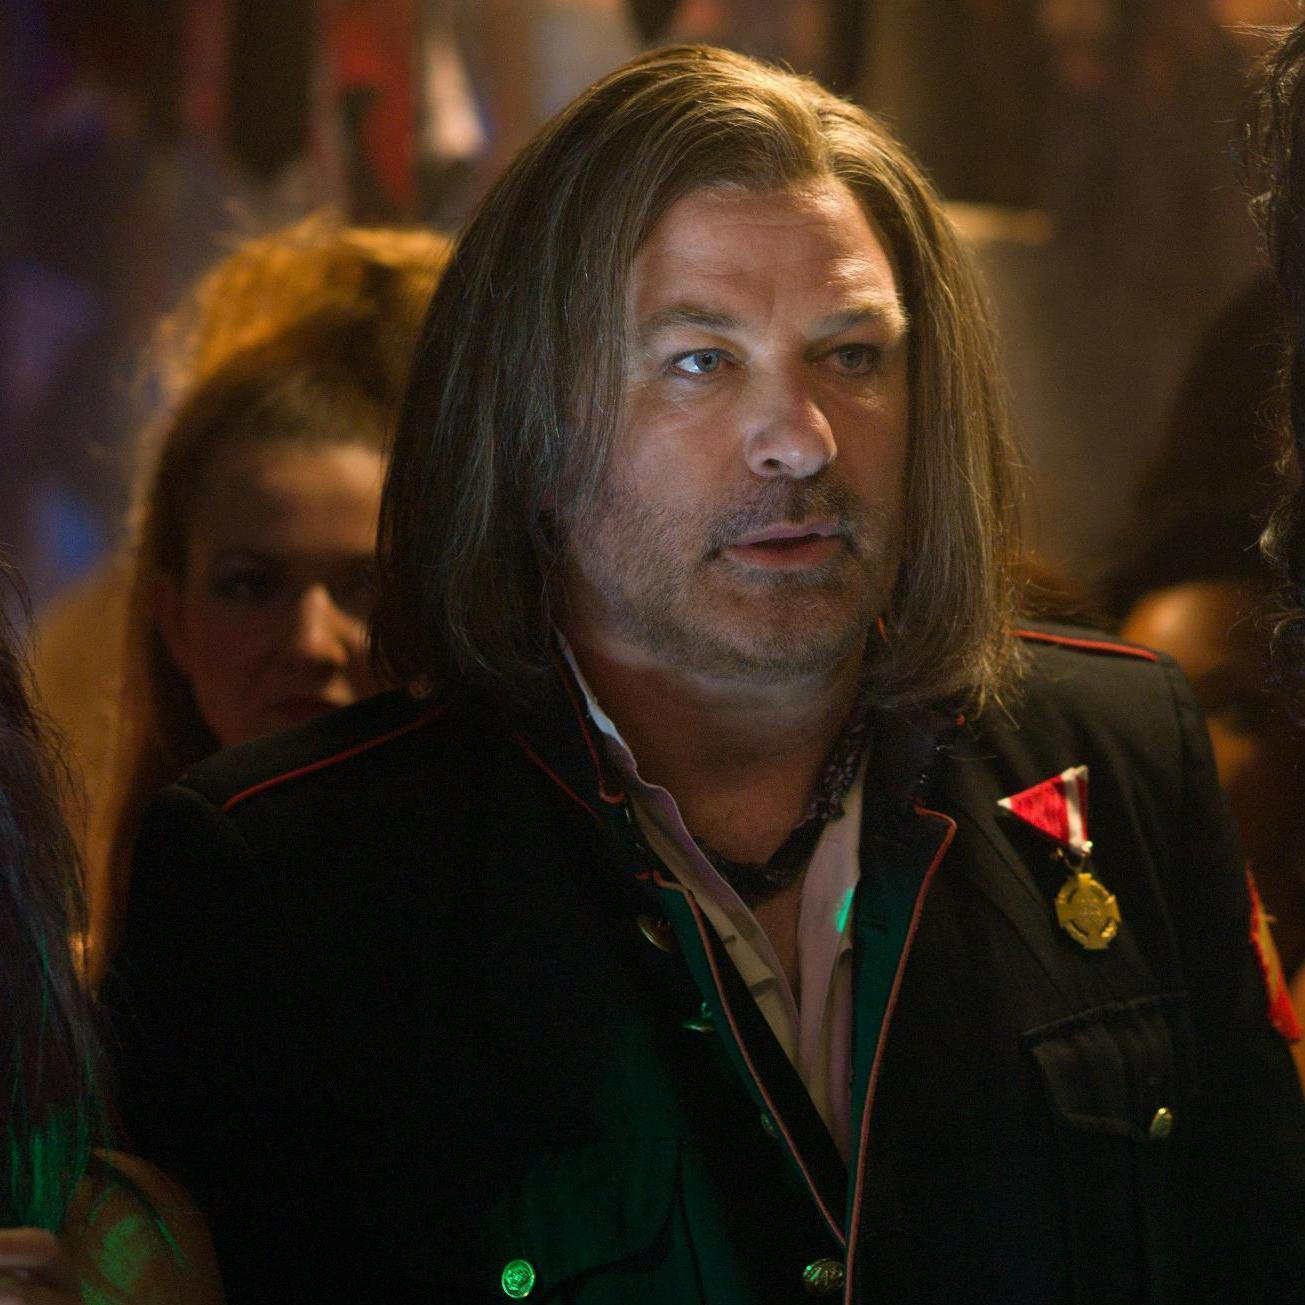 Club owner Dennis Dupree (Alec Baldwin, left) and his assistant Lonny Barnett (Russell Brand) try to figure out a way to keep their nightclub open in the movie adaptation of Rock of Ages.